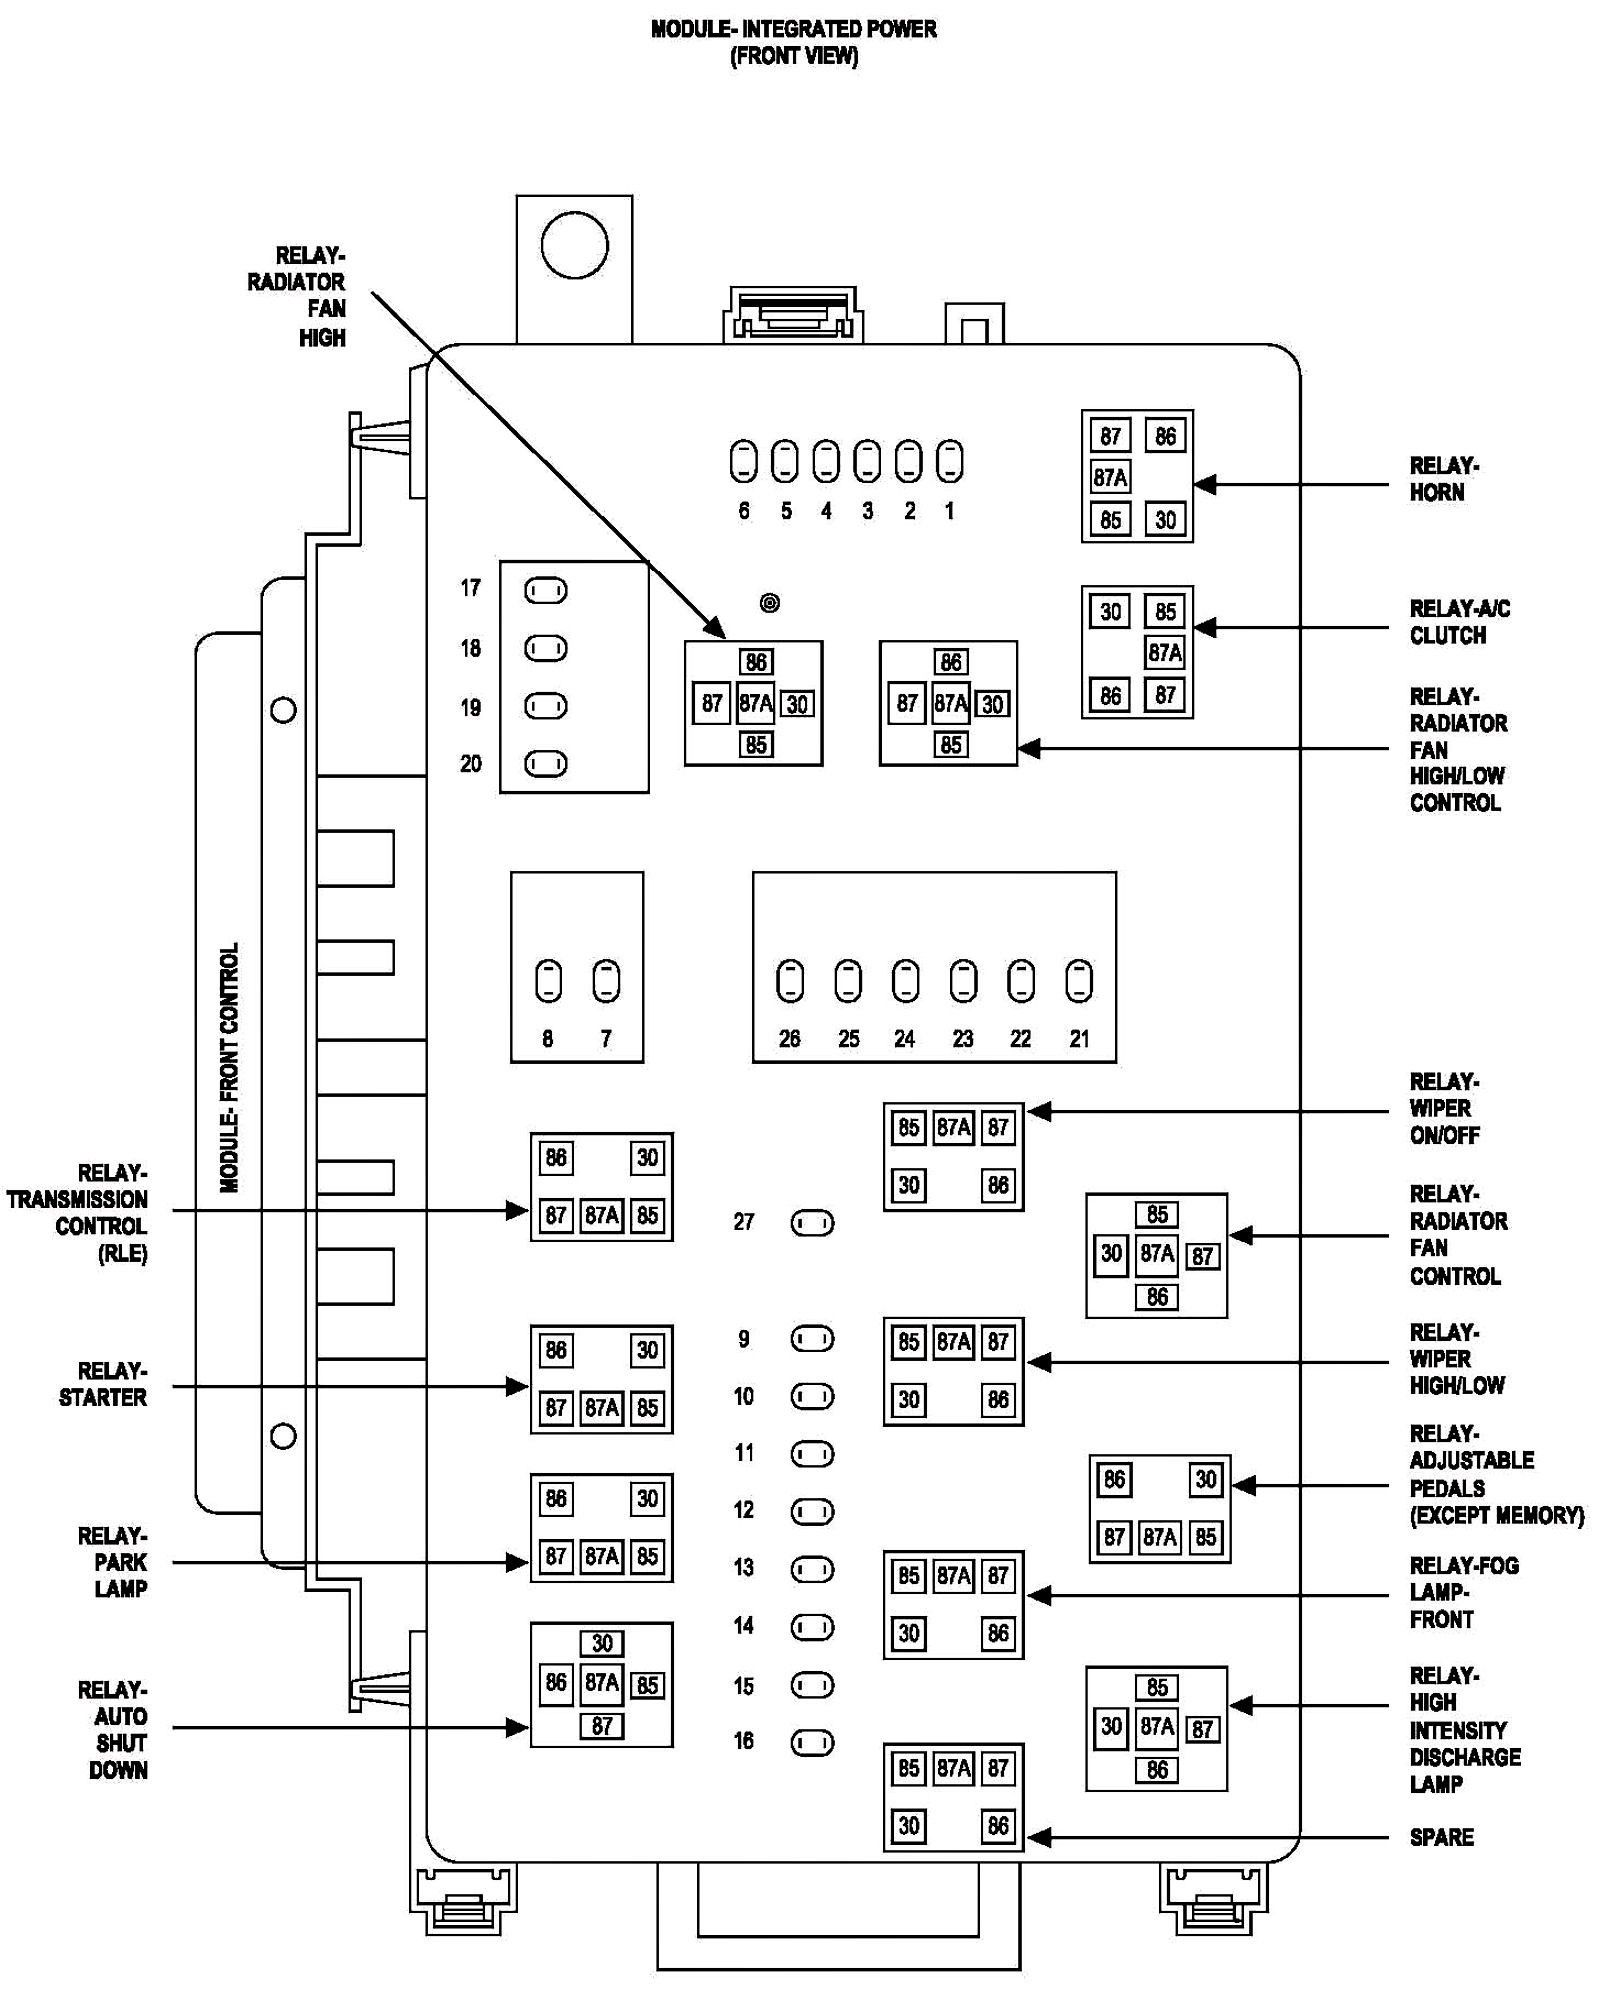 [DIAGRAM] Radio Wiring Diagram For 06 Chrysler 300 FULL